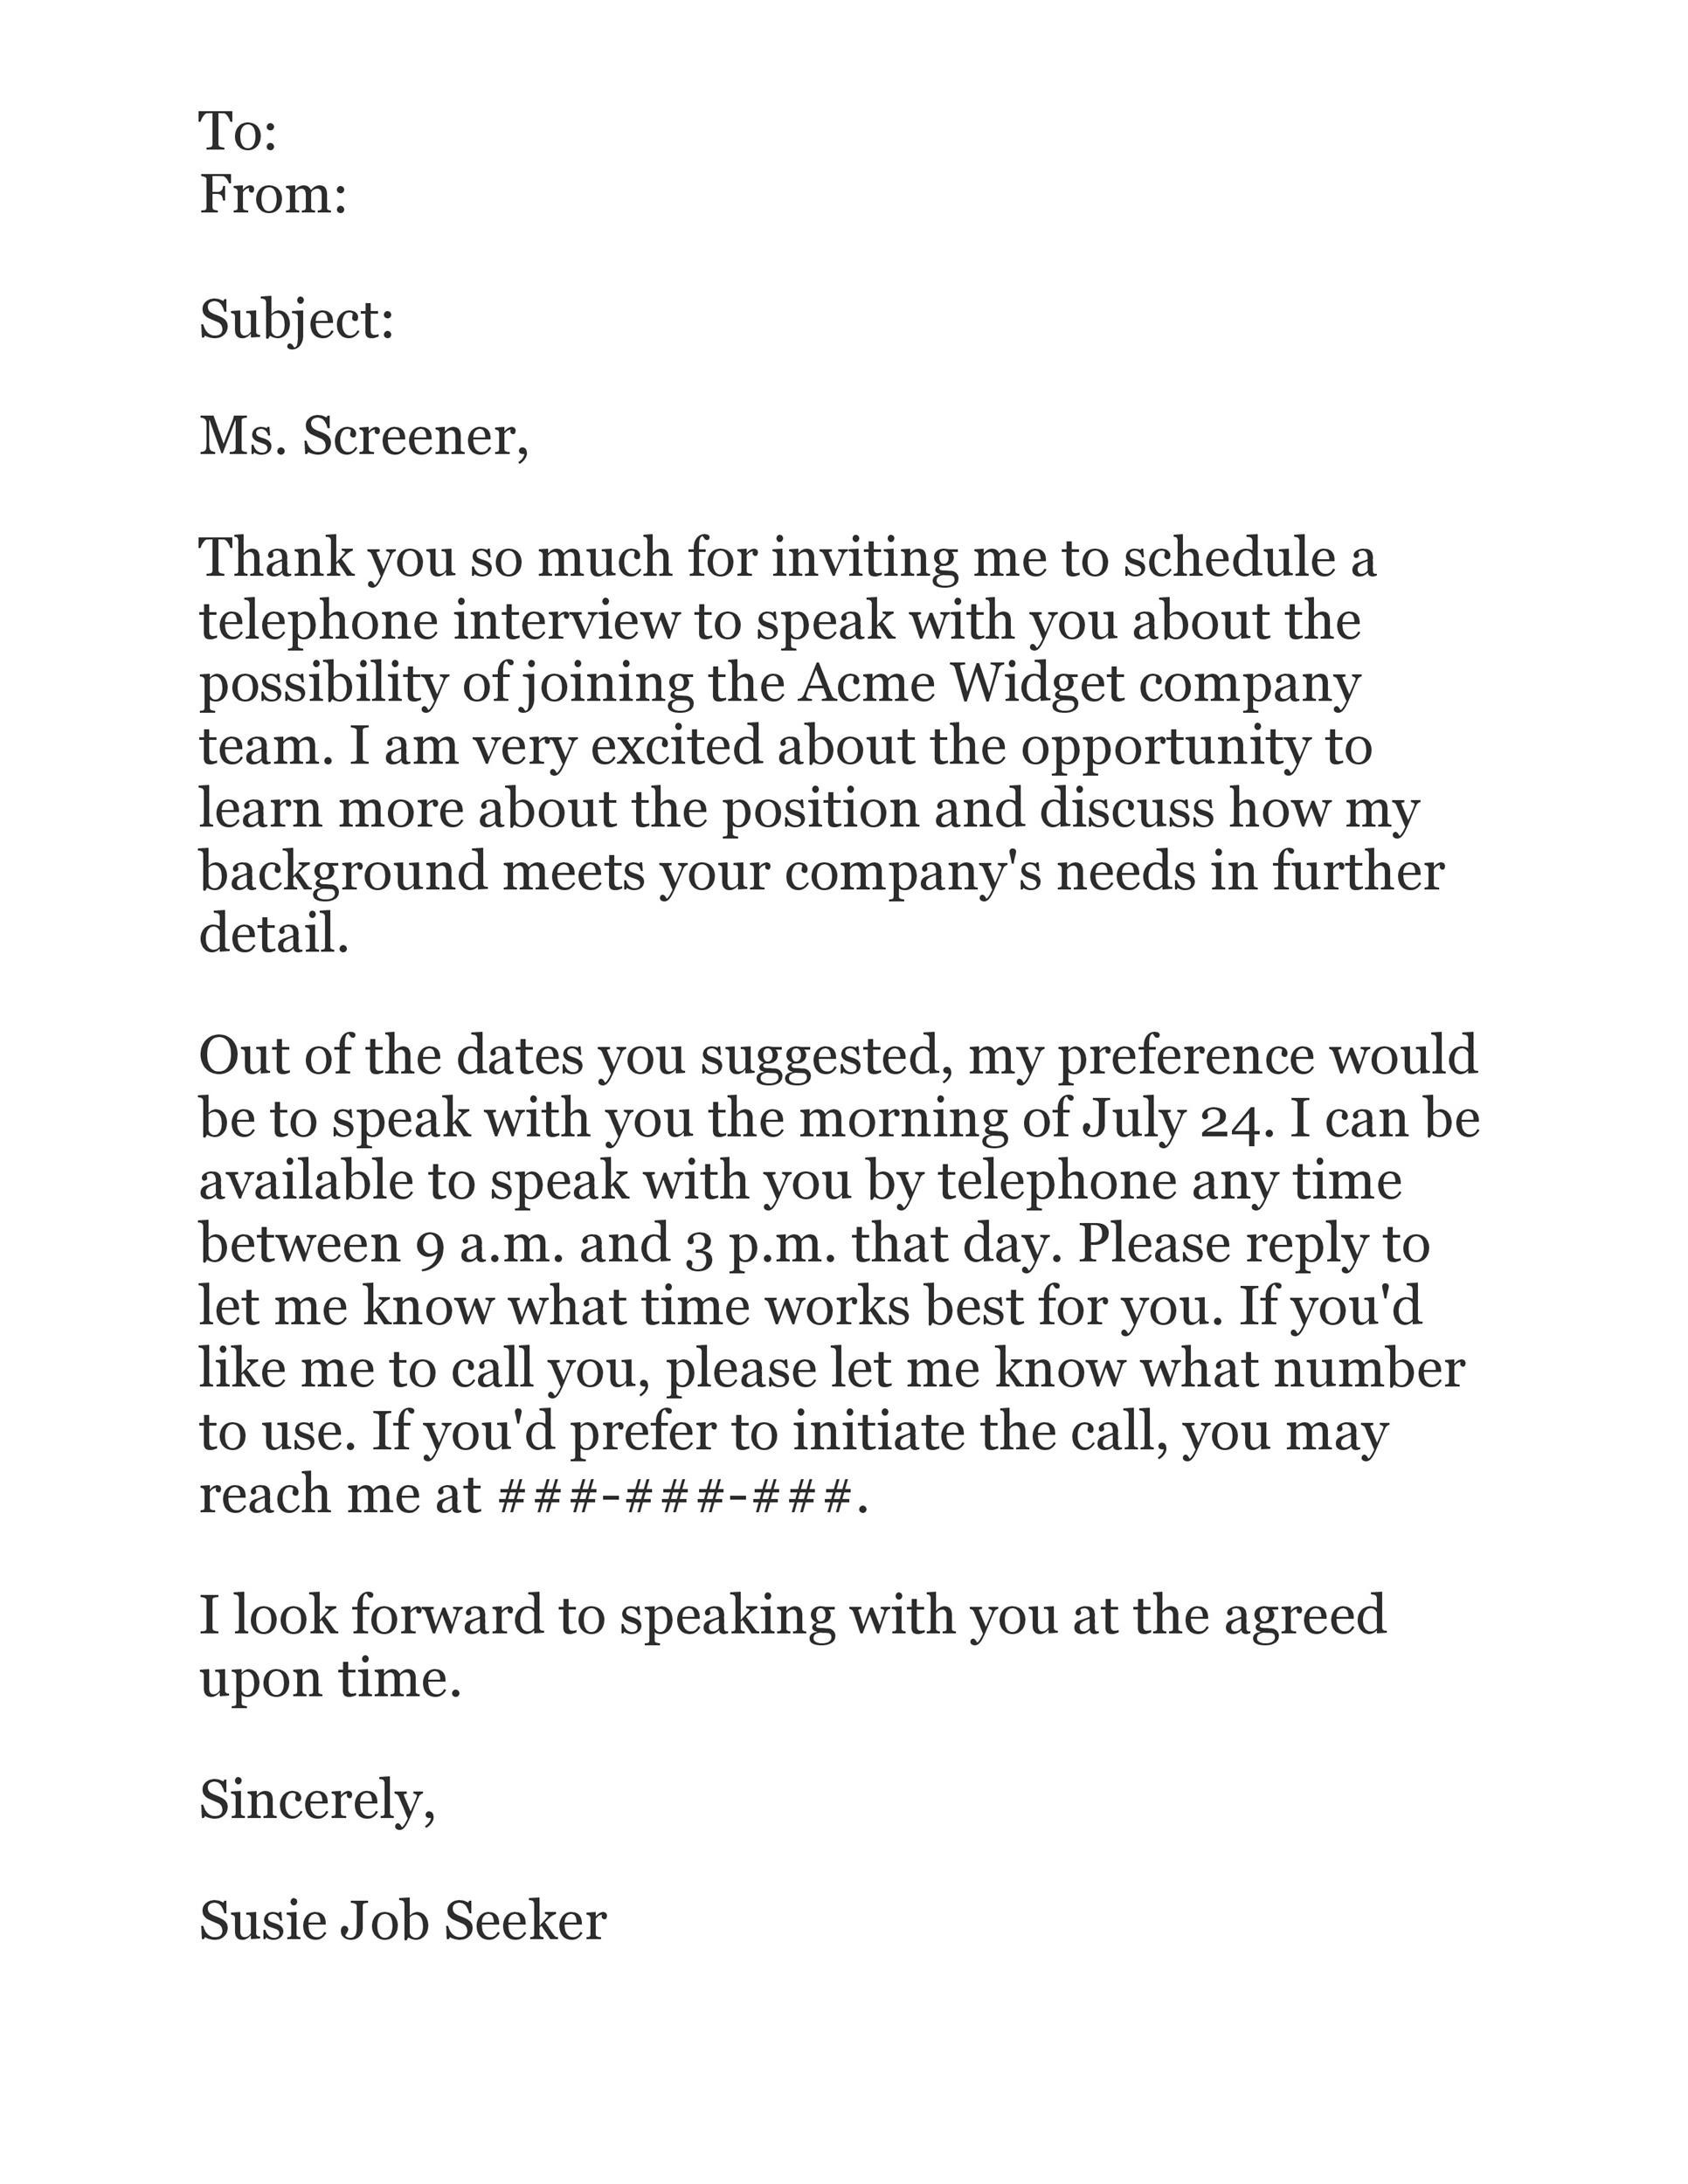 38 Professional Interview Acceptance Emails (+Smart Tips) ᐅ